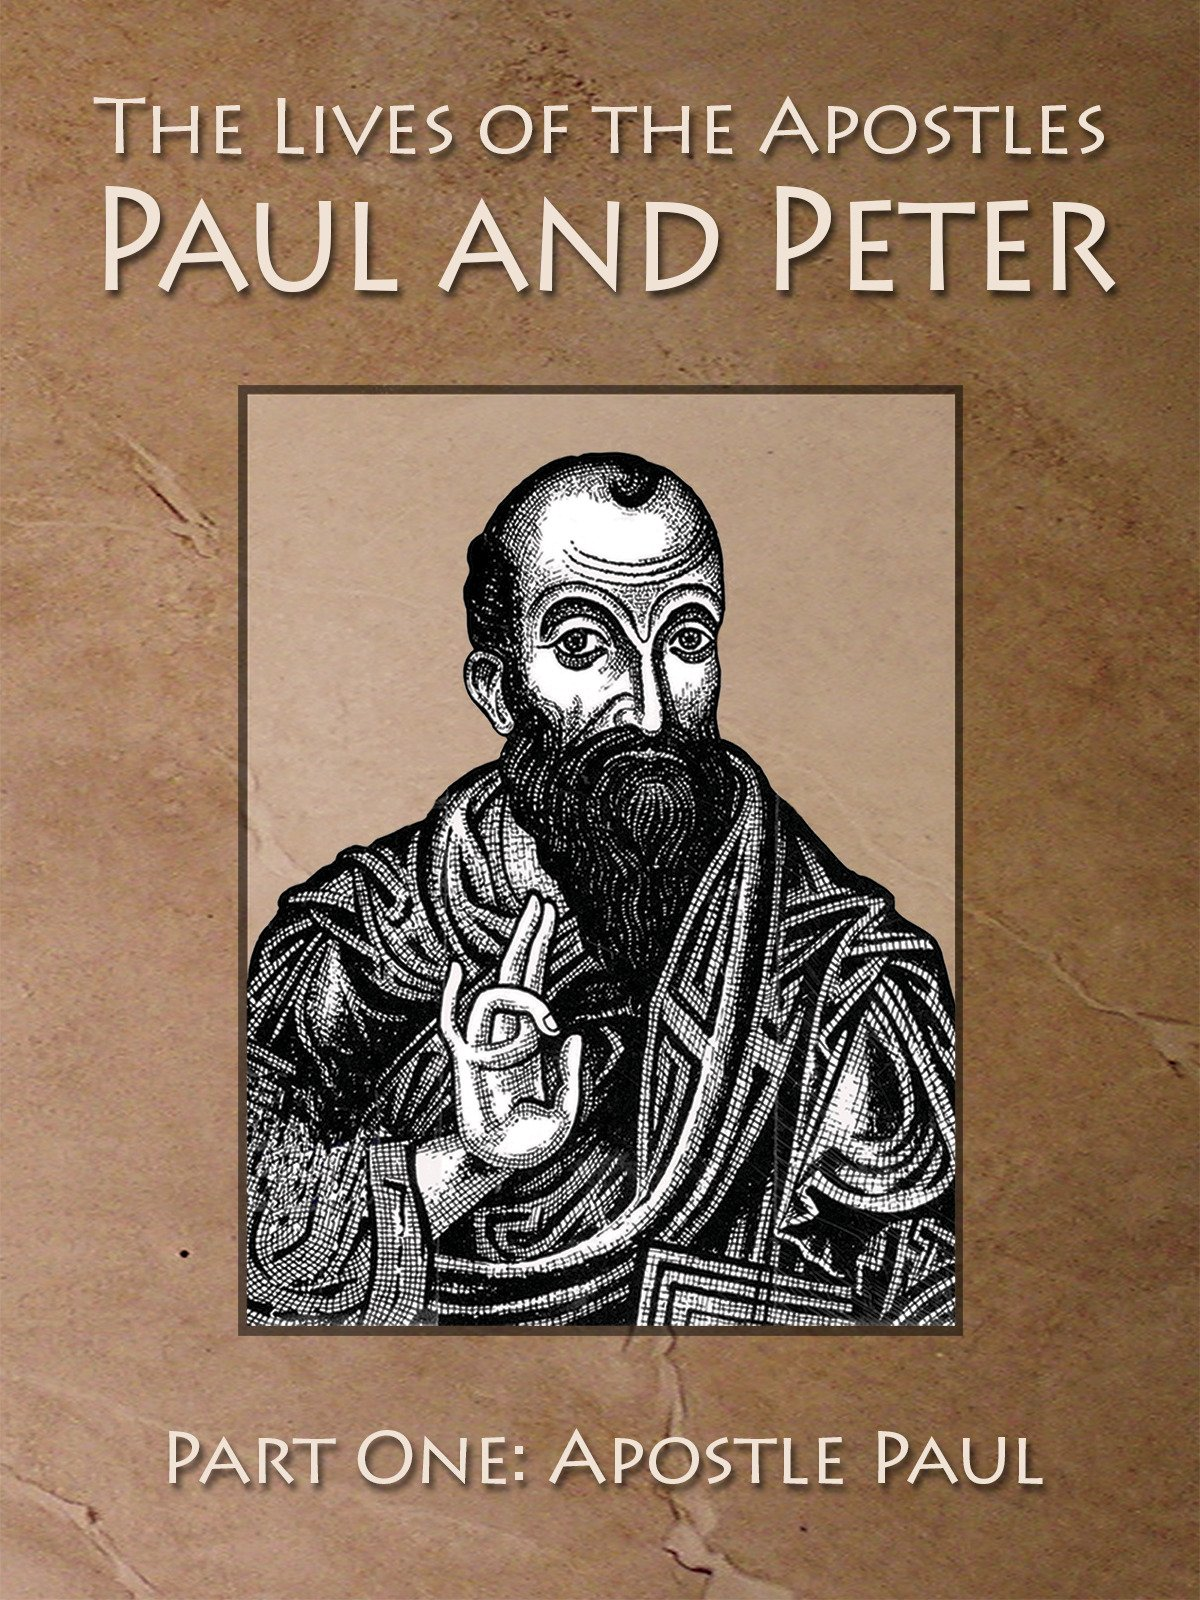 The Lives of the Apostles Paul and Peter Paul One: Apostle Paul on Amazon Prime Video UK